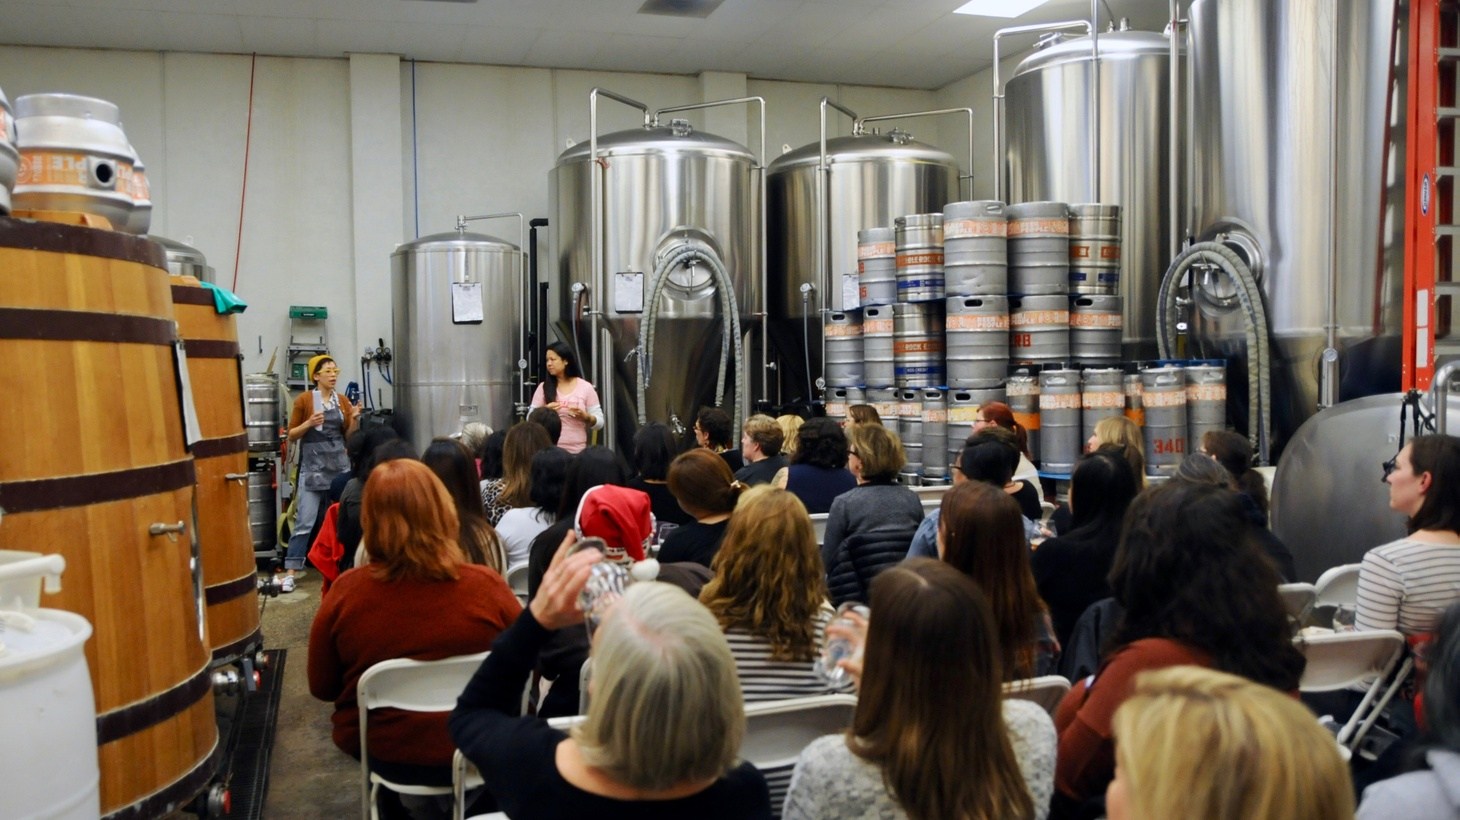 In 2011, the owner of the Eagle Rock Brewery started hosting beer seminars for women. The events were part networking and part opportunity for women to learn about beer. Then a men's rights activist claimed the events were discriminatory.